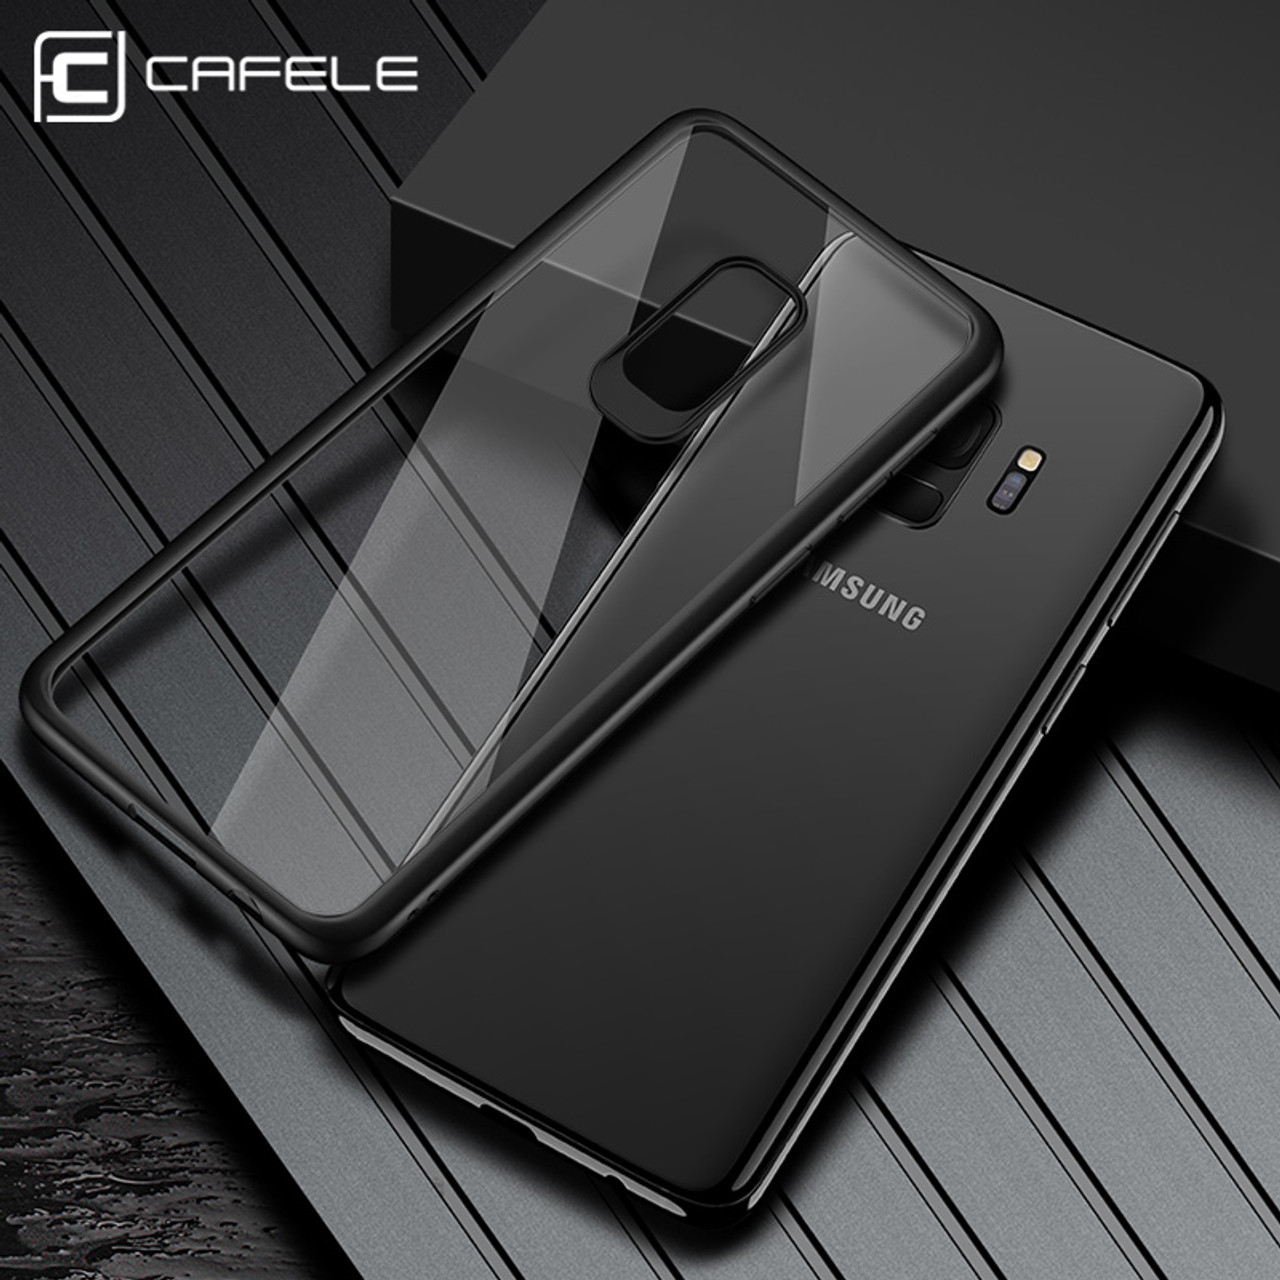 huge discount 54efc 51d63 CAFELE Case for Samsung galaxy s9 plus TPU+PC Fashion Luxury Transparent  Back Ultra thin Shockproof Cover for Samsung galaxy s9